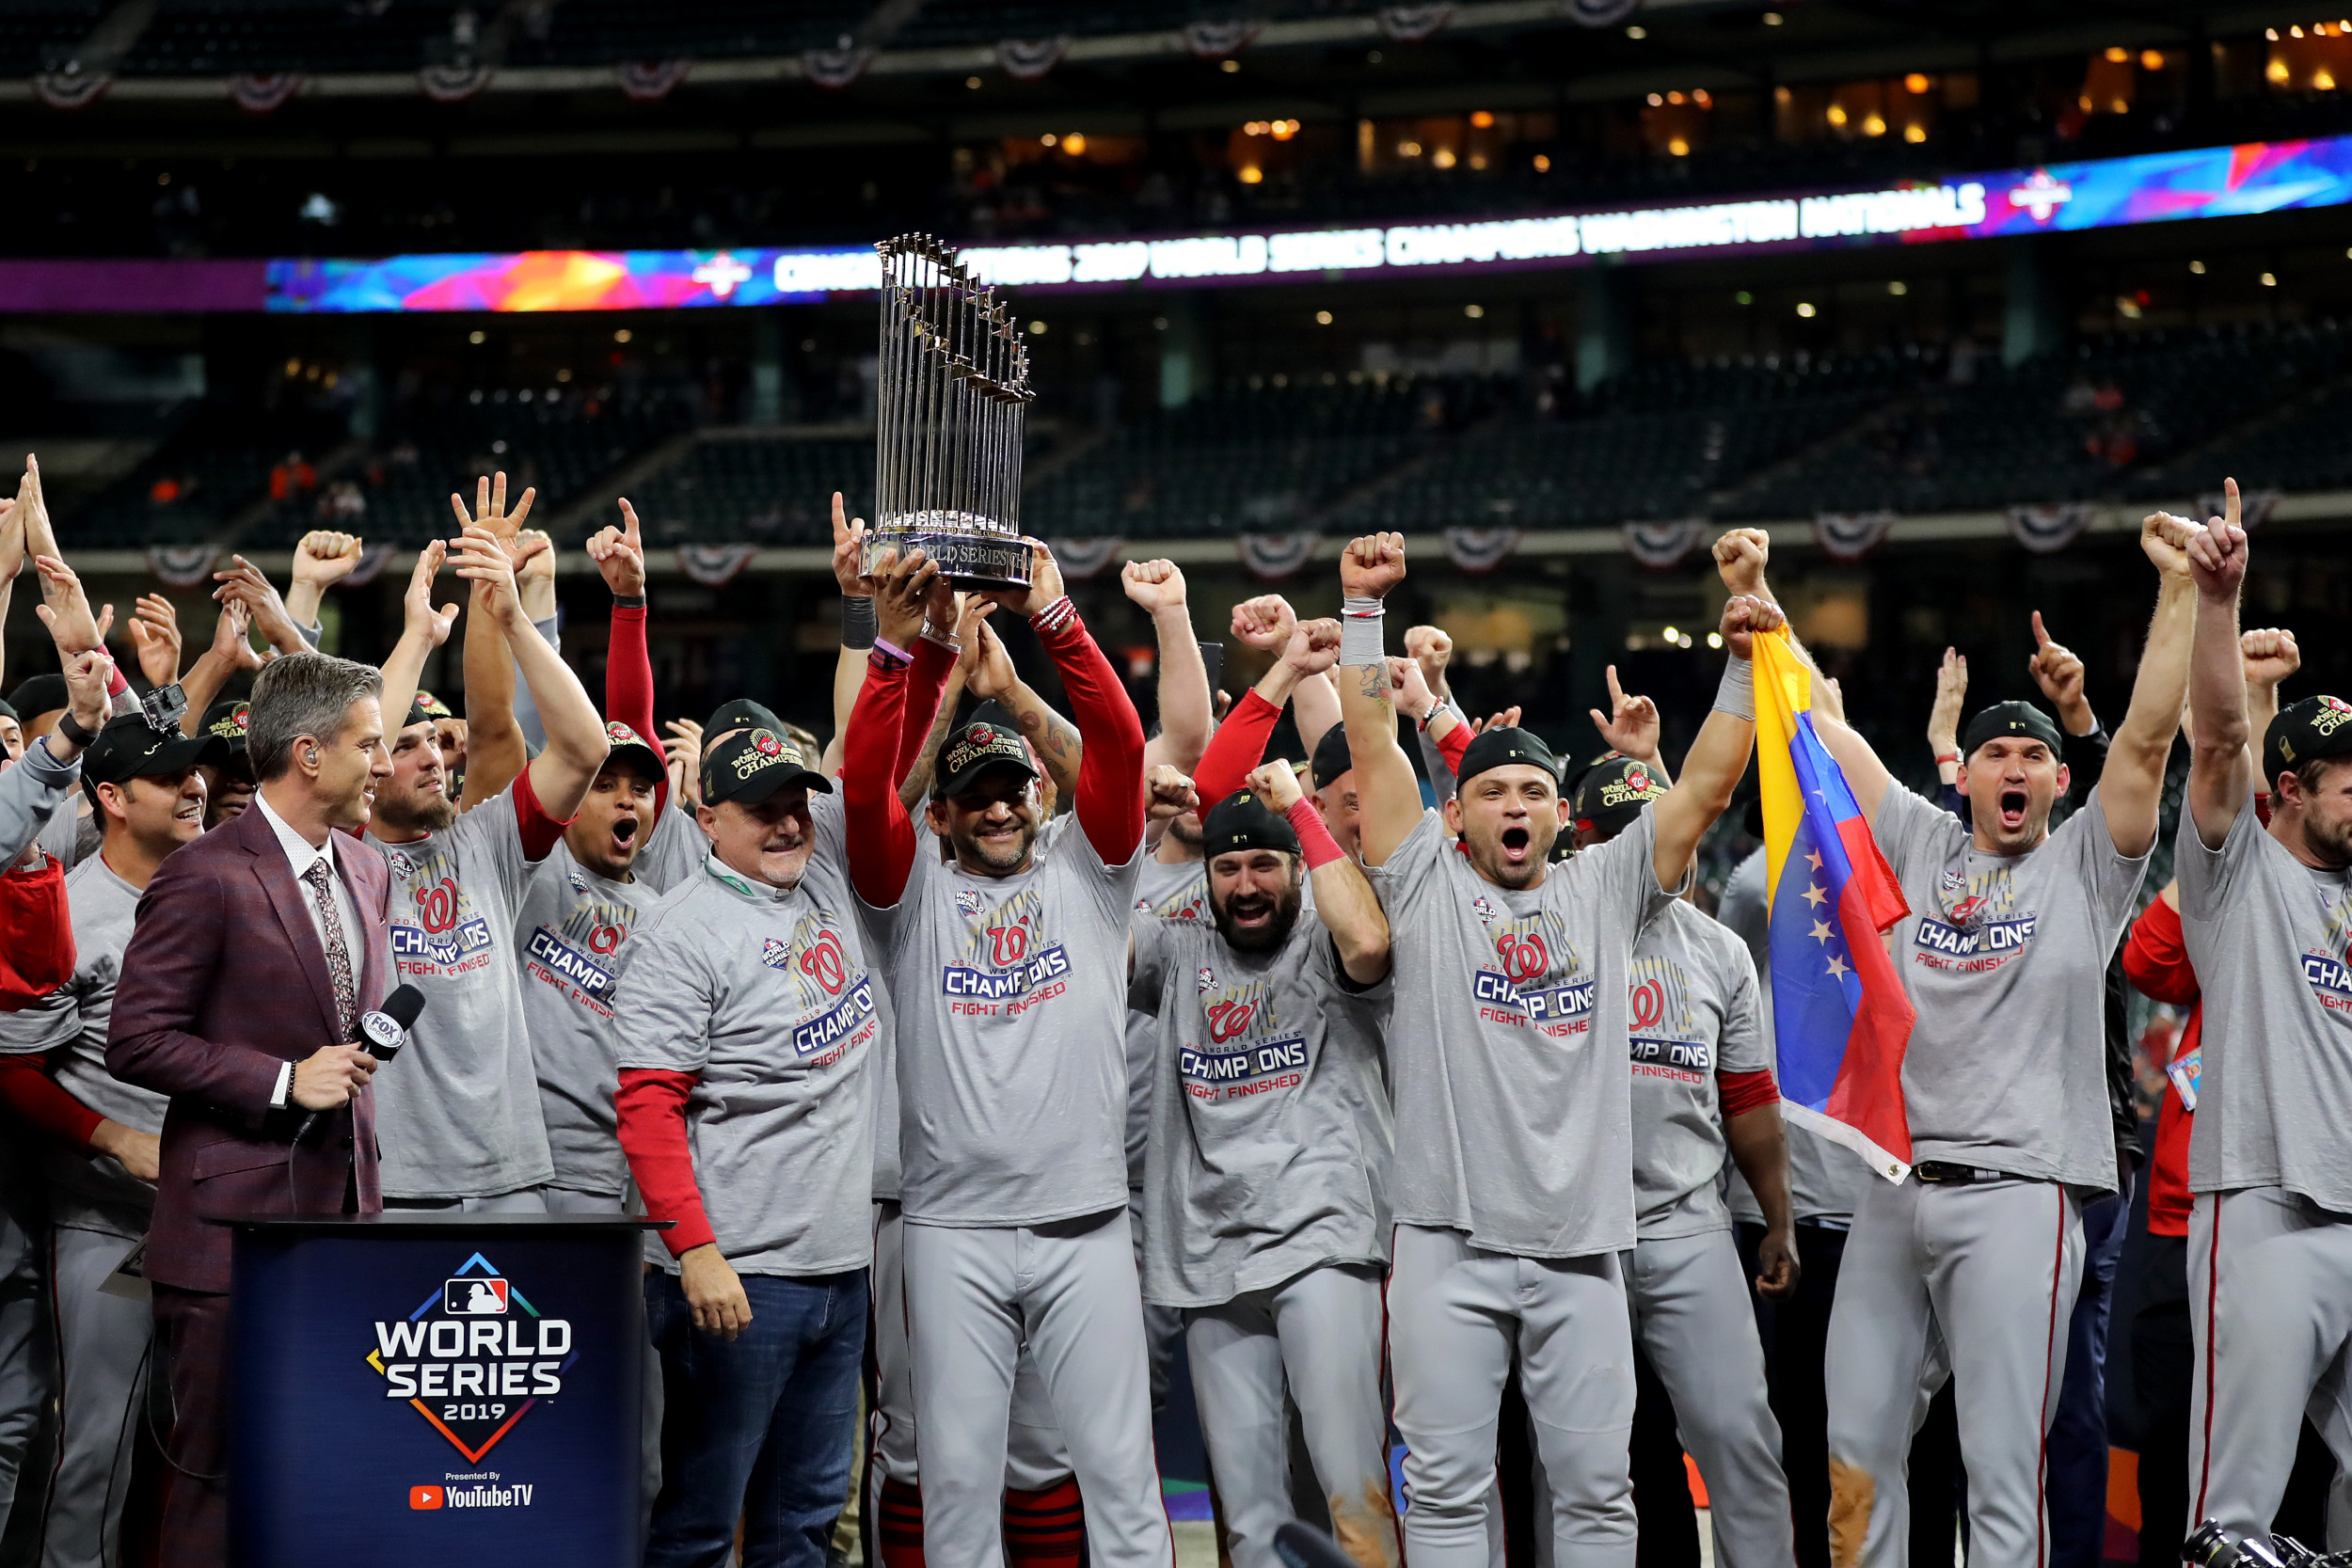 World Series 2019 All The Records The Nationals Broke To Win